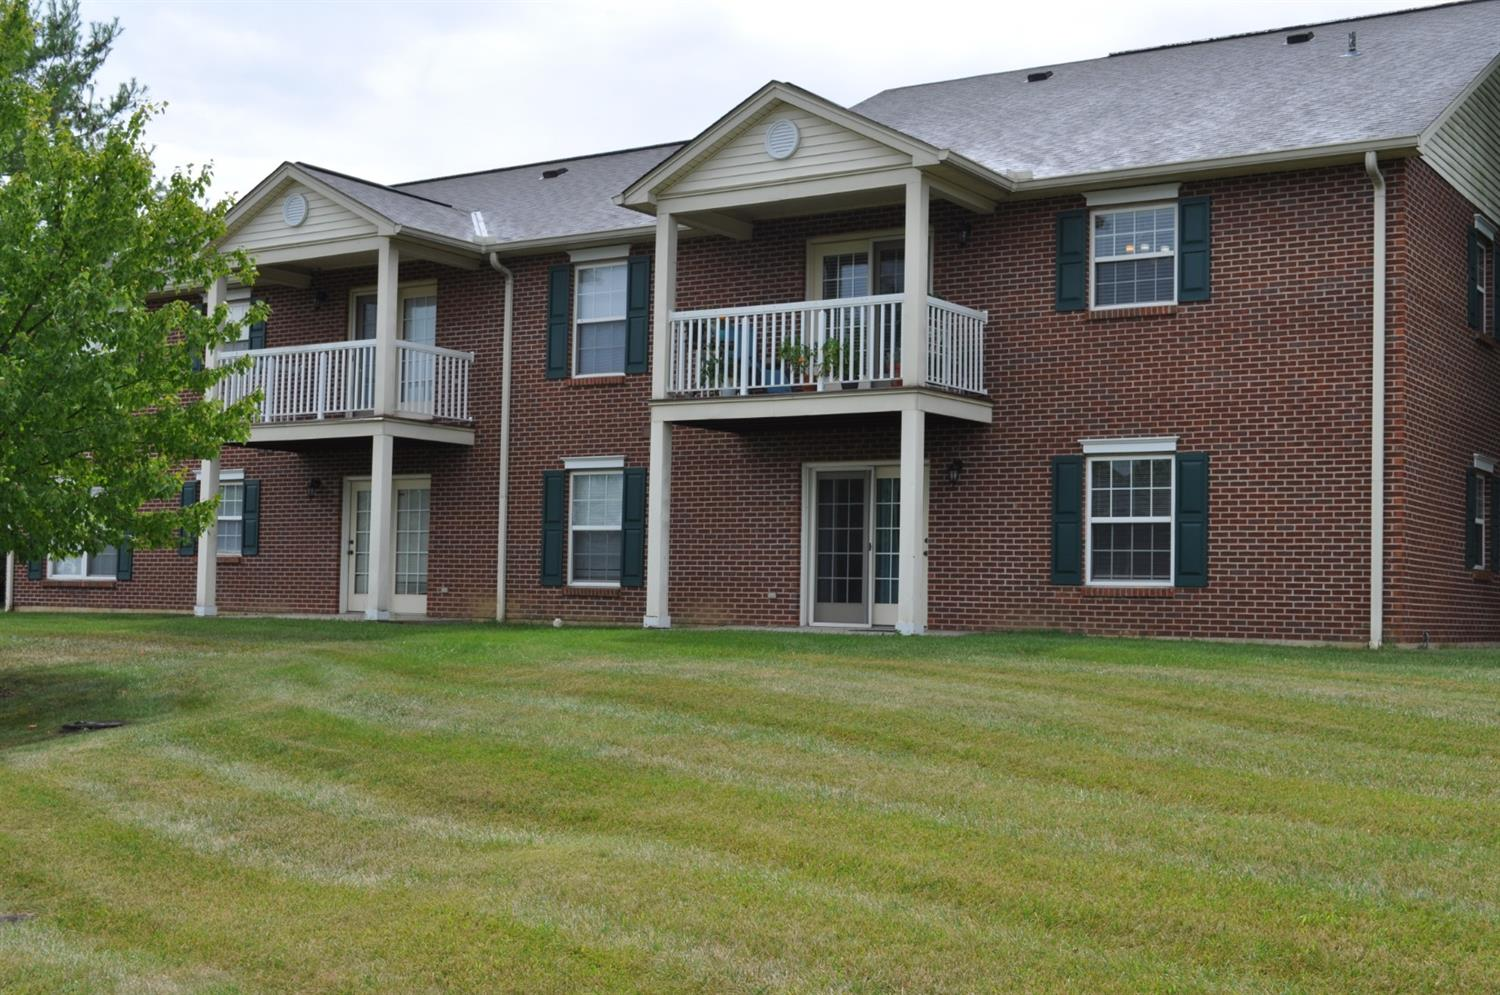 Property for sale at 44 Indian Cove Circle Unit: 4, Oxford,  Ohio 45056